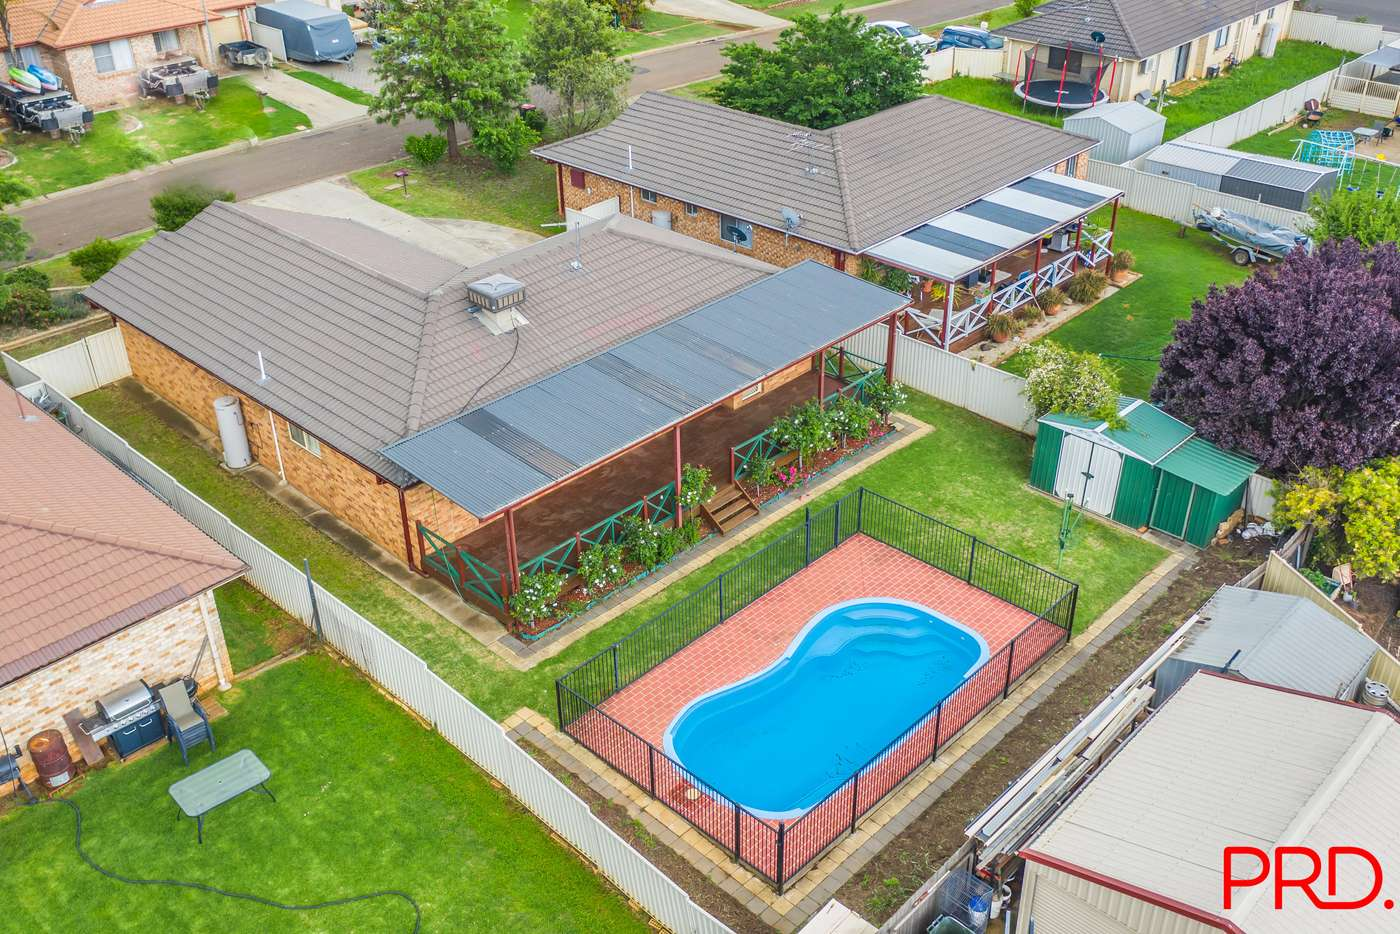 Main view of Homely house listing, 5 Giles Place, Tamworth NSW 2340